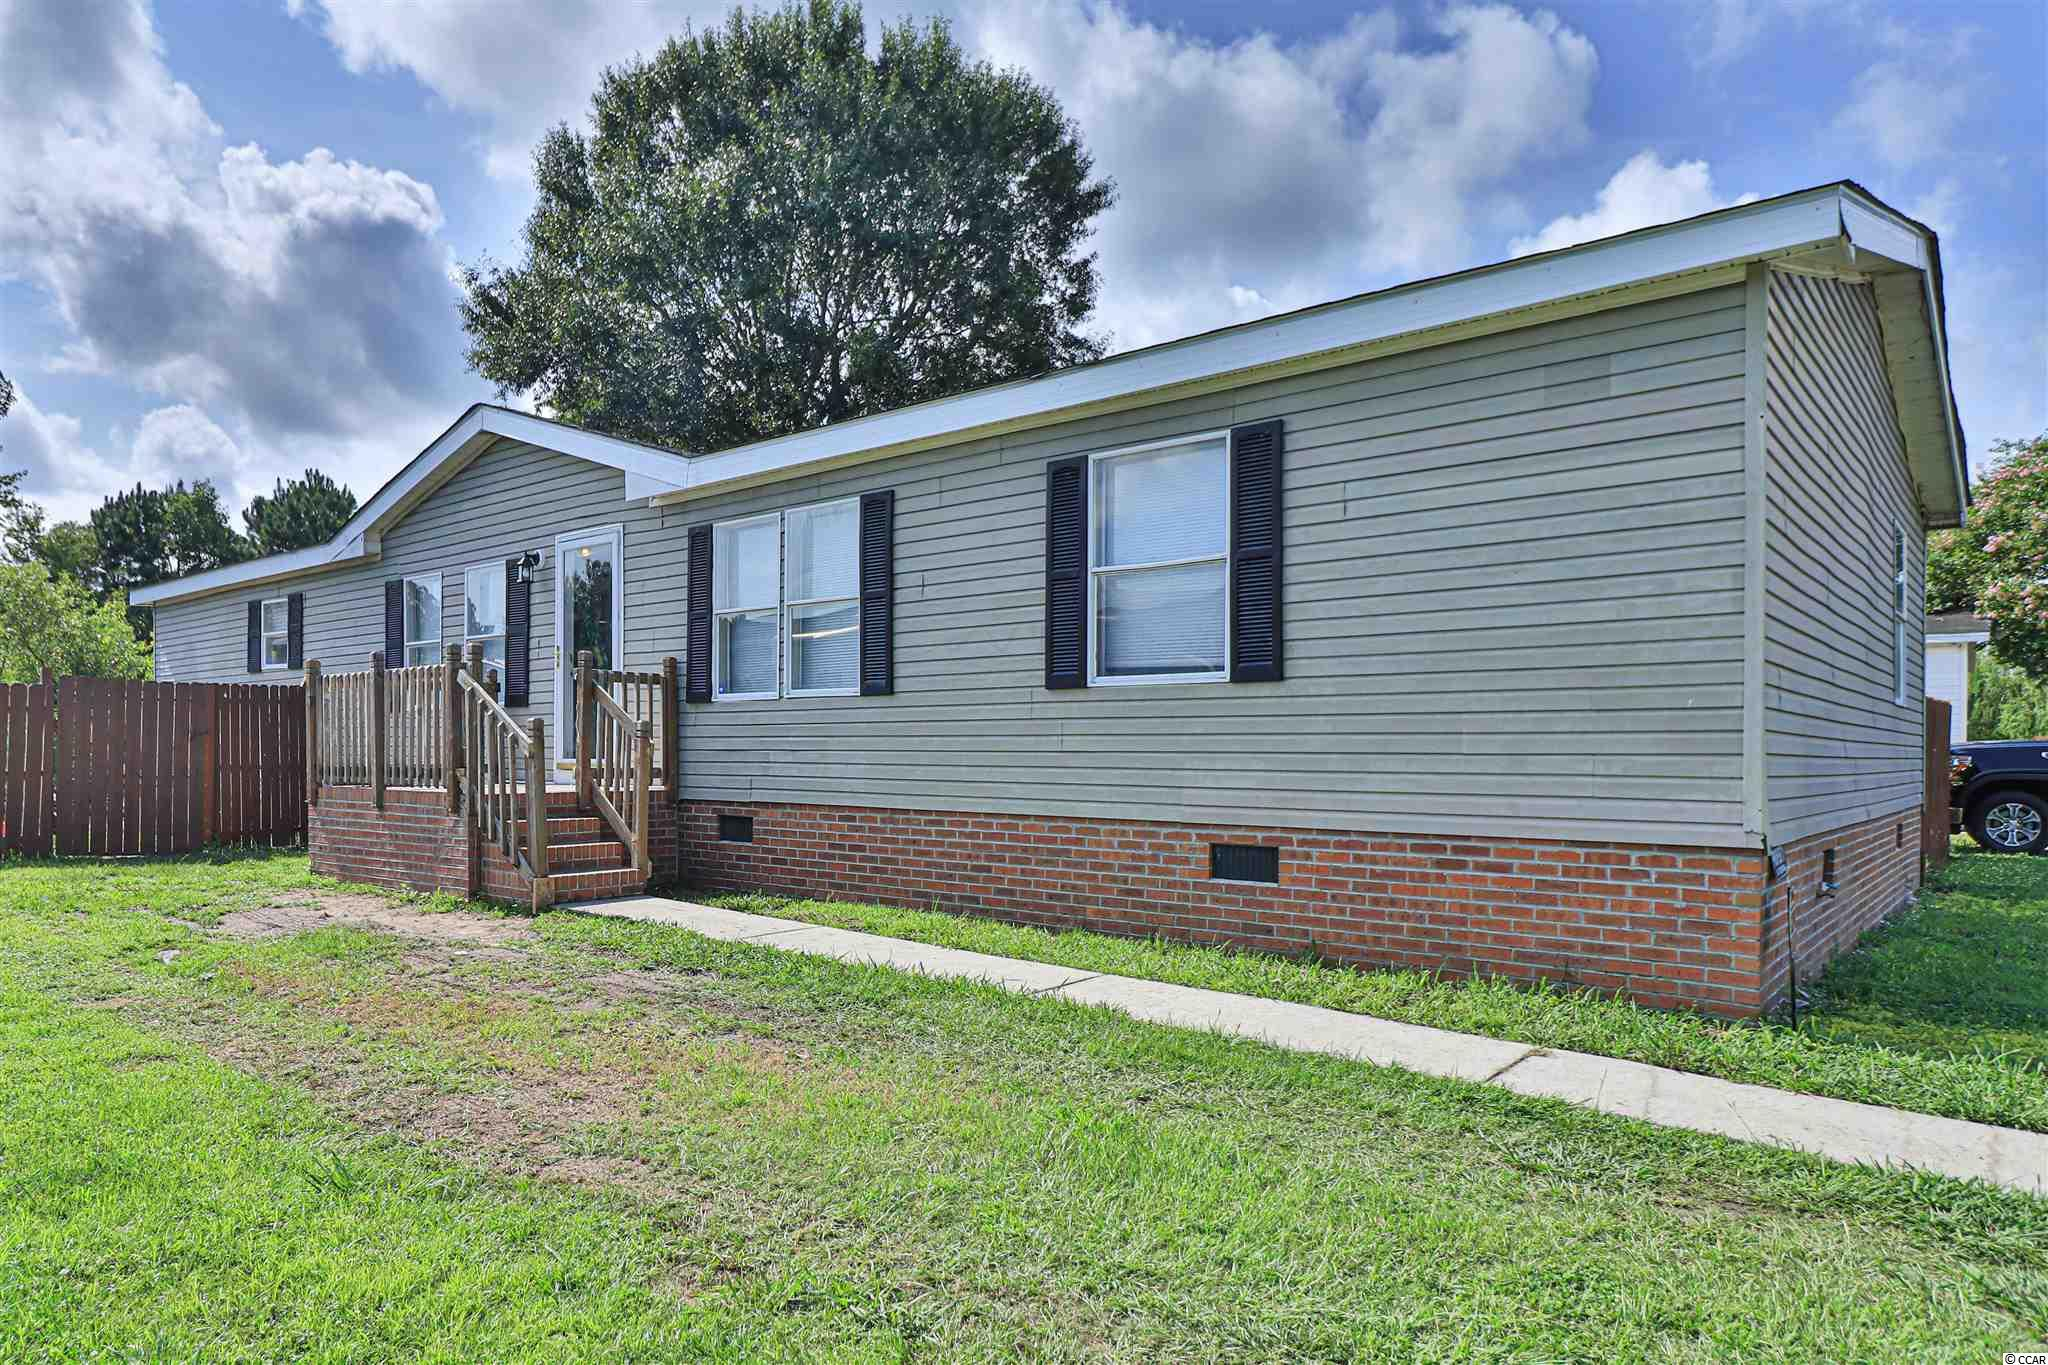 Location! Location! Location! This newly updated double wide with land has 3 bedrooms and 2 full bathrooms, an open floorplan and big fenced yard! All of this is just minutes from the beach and right at Highway 31 so you can zip over to everything Myrtle Beach has to offer without living in the middle of it. The kitchen has stainless appliances and lovely skylights that bring the natural light in. The family room has a stone fireplace that goes from floor to ceiling right between sliding glass doors and extra large double windows along with skylights! This place is light and airy! The Master suite has a walk in closet and a large bathroom with both a walk in shower and a large soaking tub to relax in. This could be the perfect place for just about anyone! Schedule your showing today!